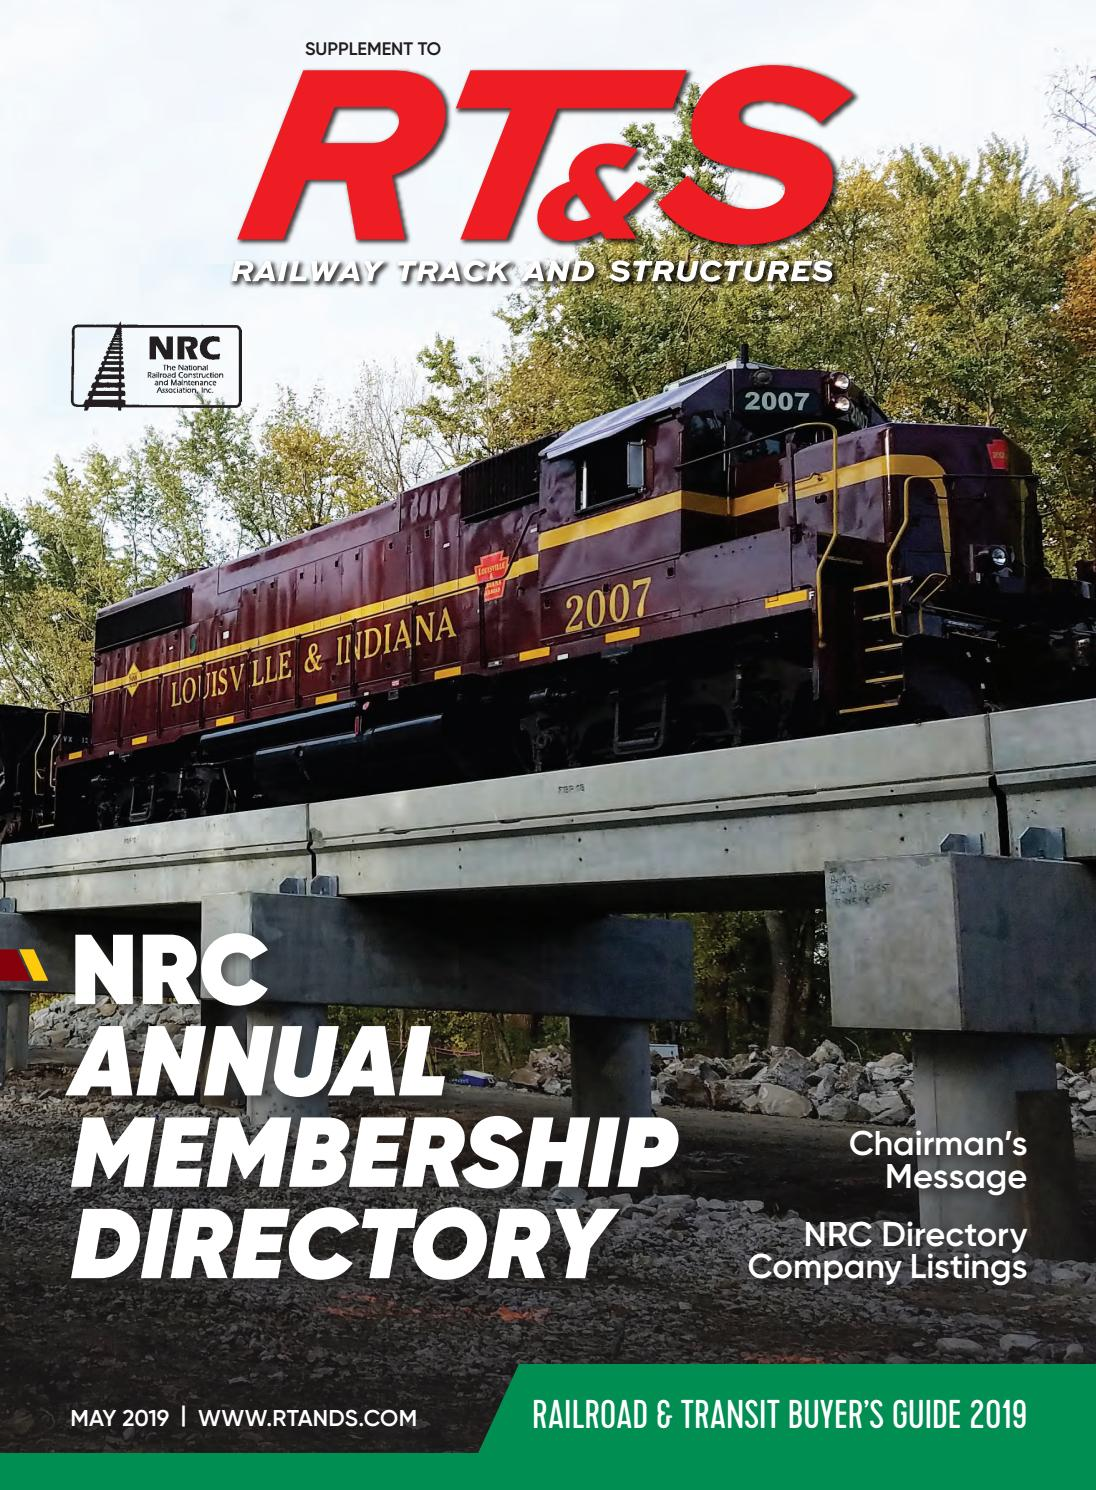 2019 NRC Directory by Railway Track & Structures - issuu